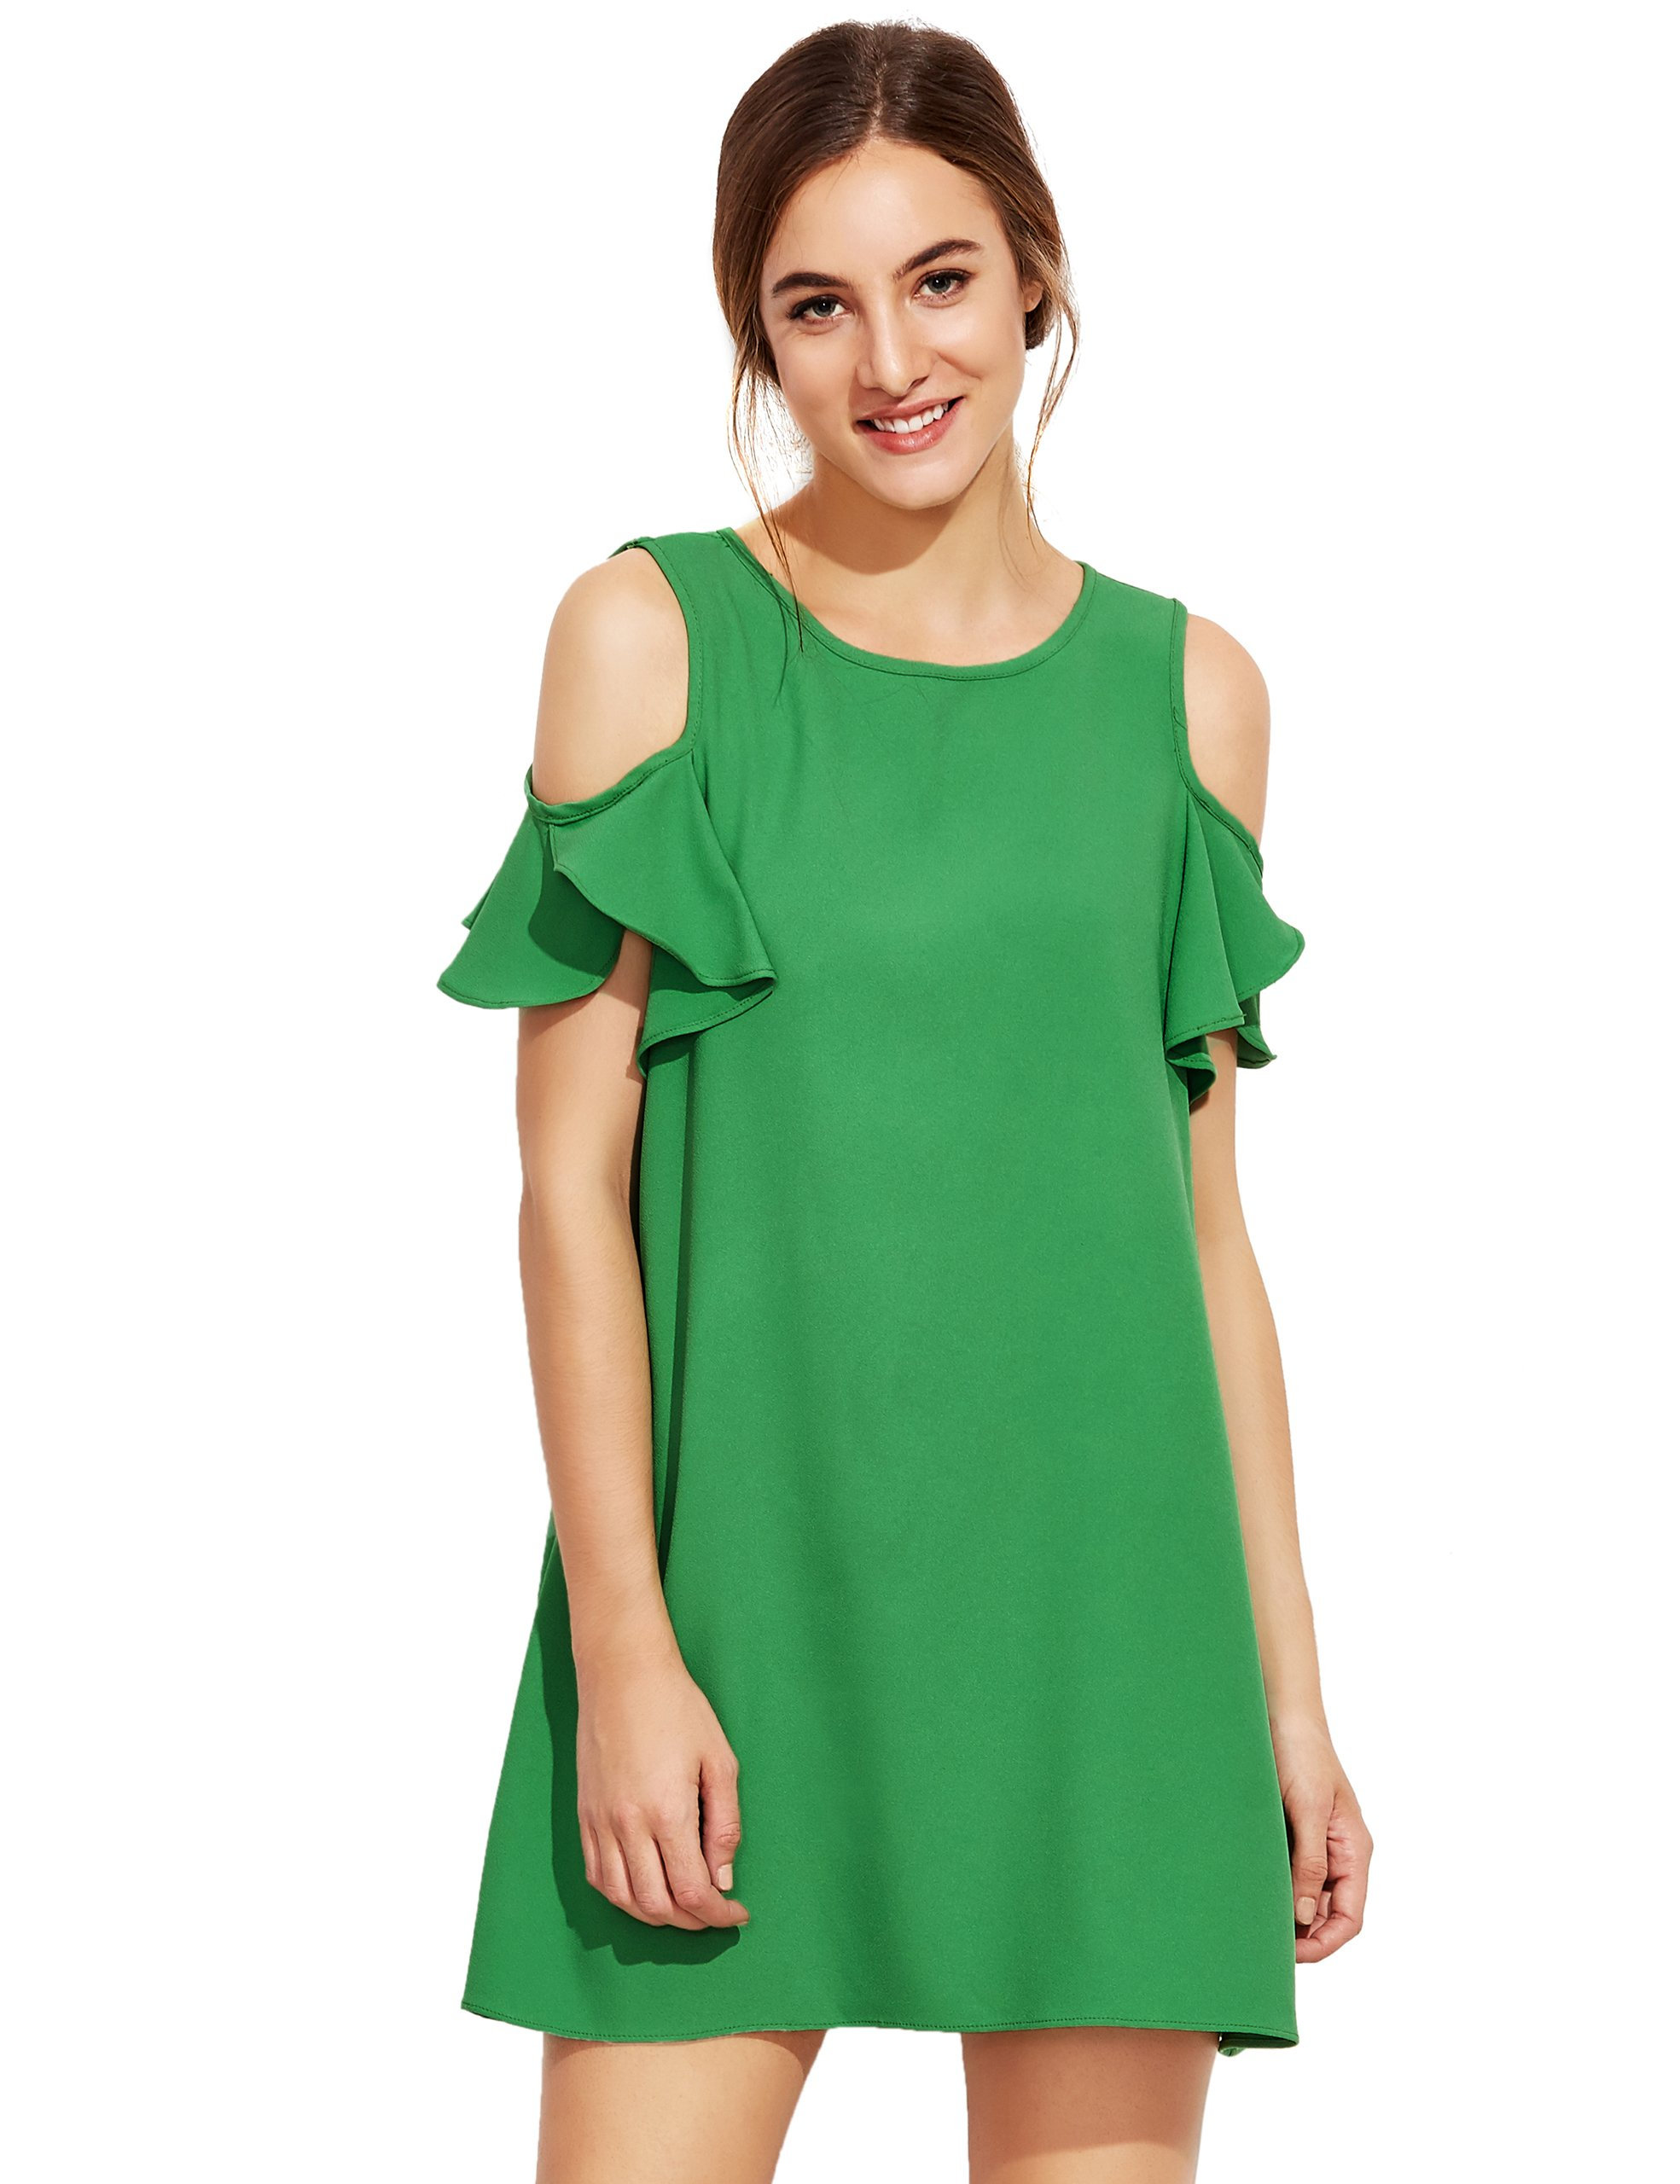 92d8e09b13 Galleon - Milumia Women's Summer Cold Shoulder Ruffle Sleeves Shift Dress  Green S